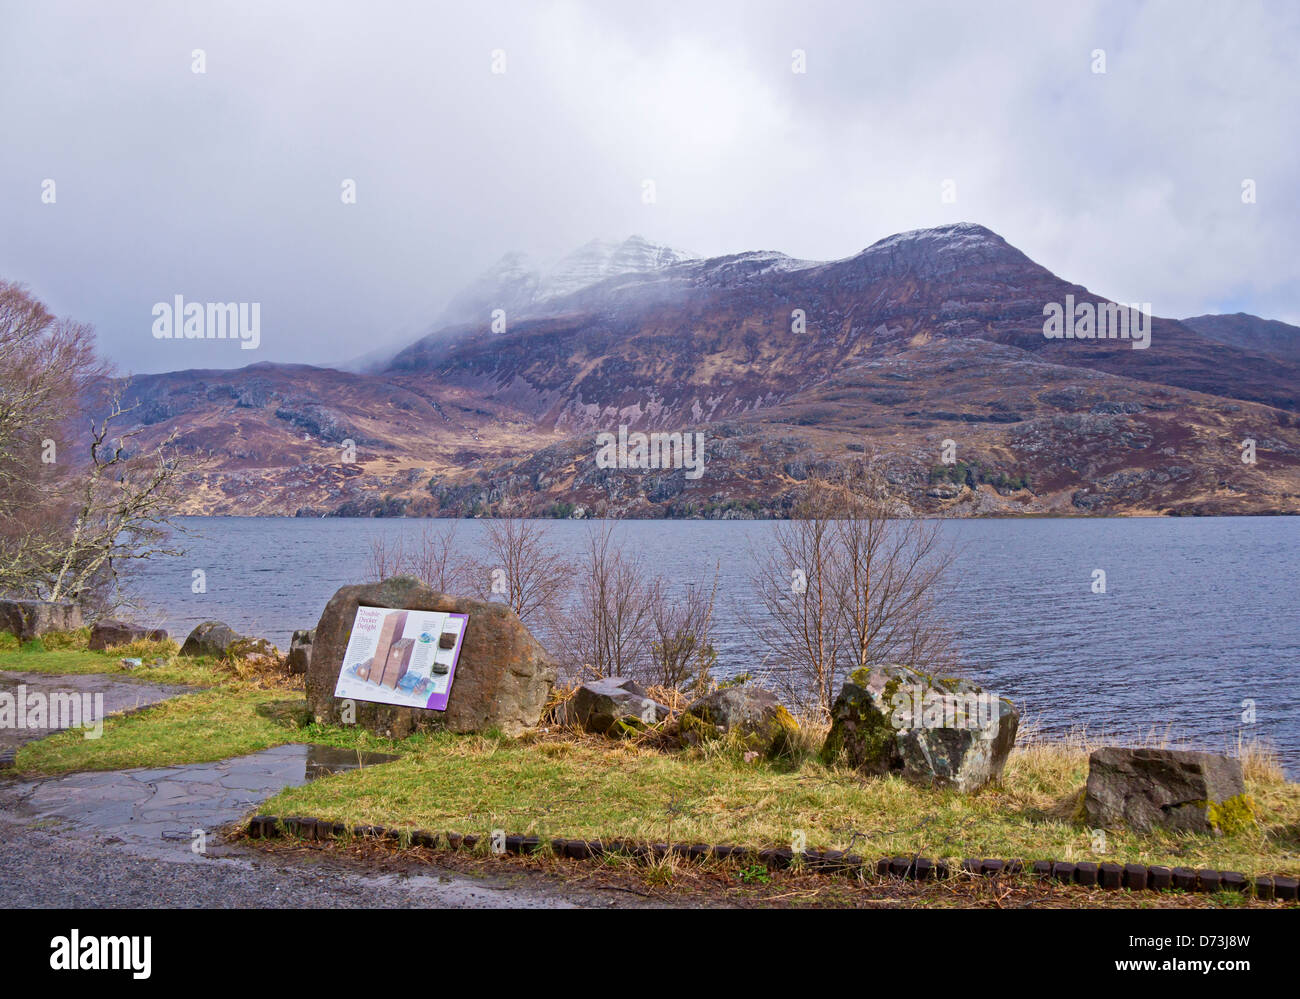 Changing April weather over Loch Maree in in Wester Ross Highland Scotland with mountain Slioch & interpretation - Stock Image